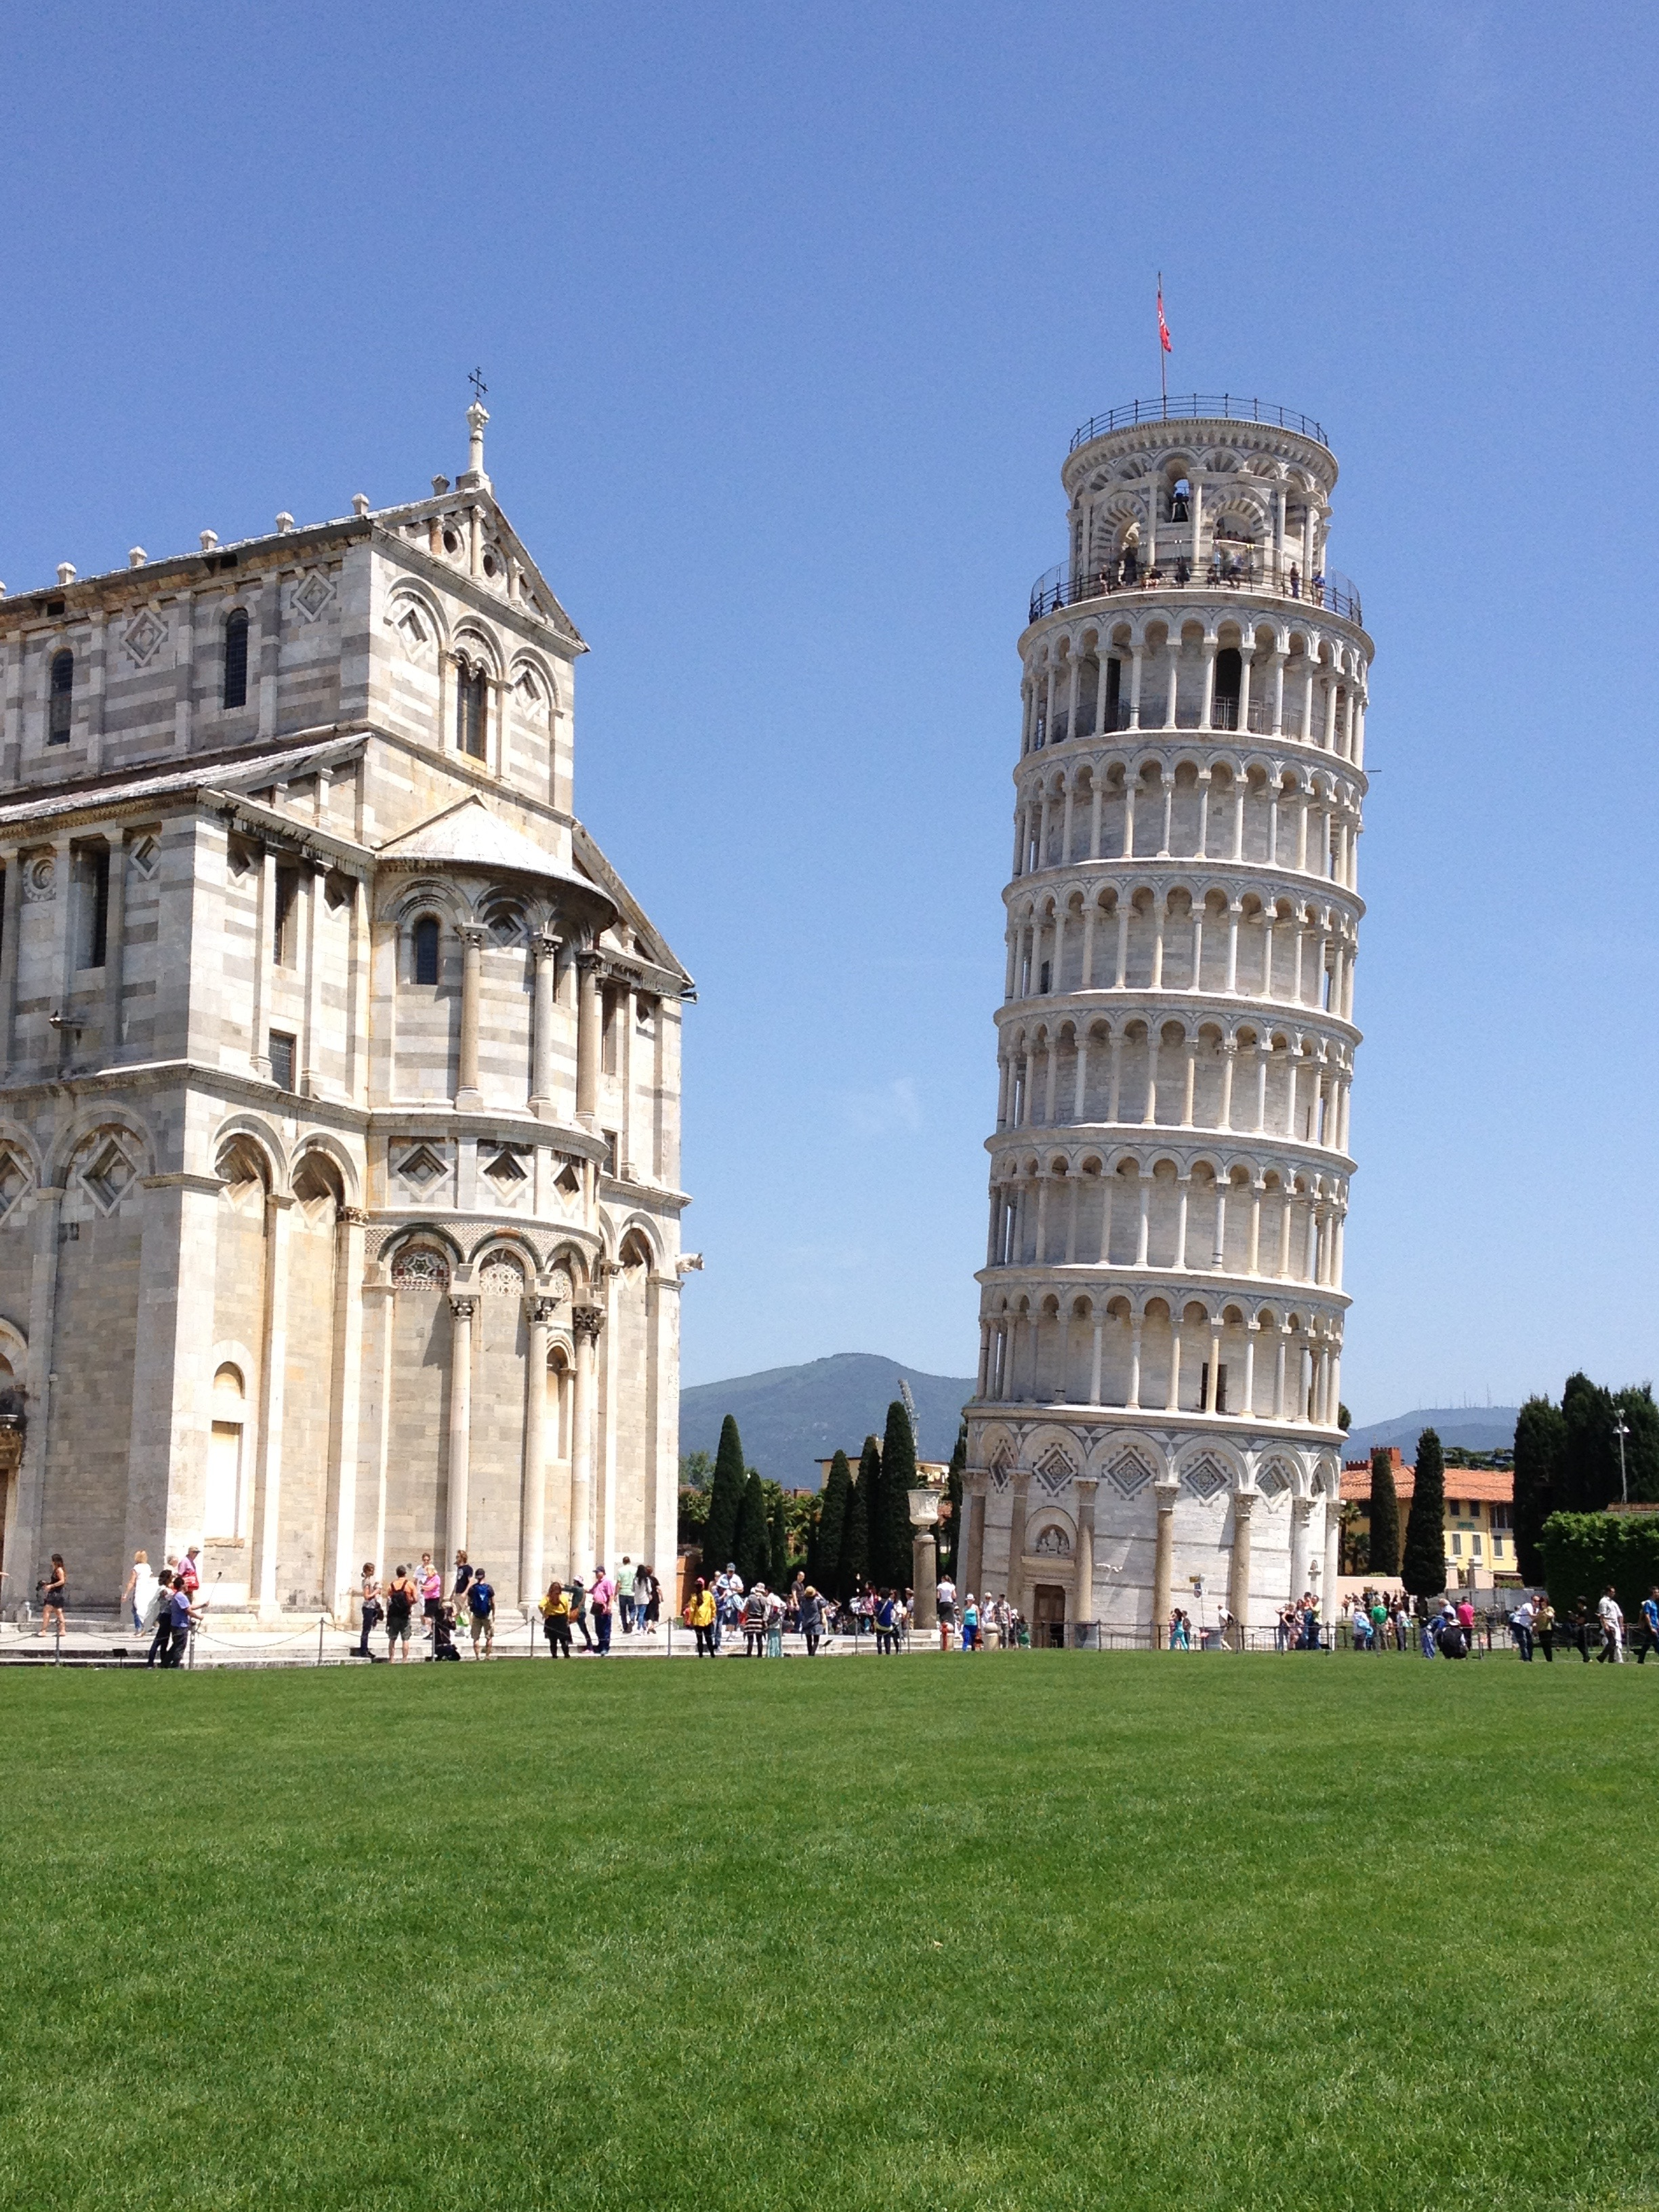 Pisa (duh). Actually my favorite picture is of a row of about a dozen tourists all lined up pretending to be holding up the leaning tower and one actually clever guy standing at an angle which makes him appear to be pushing it down.